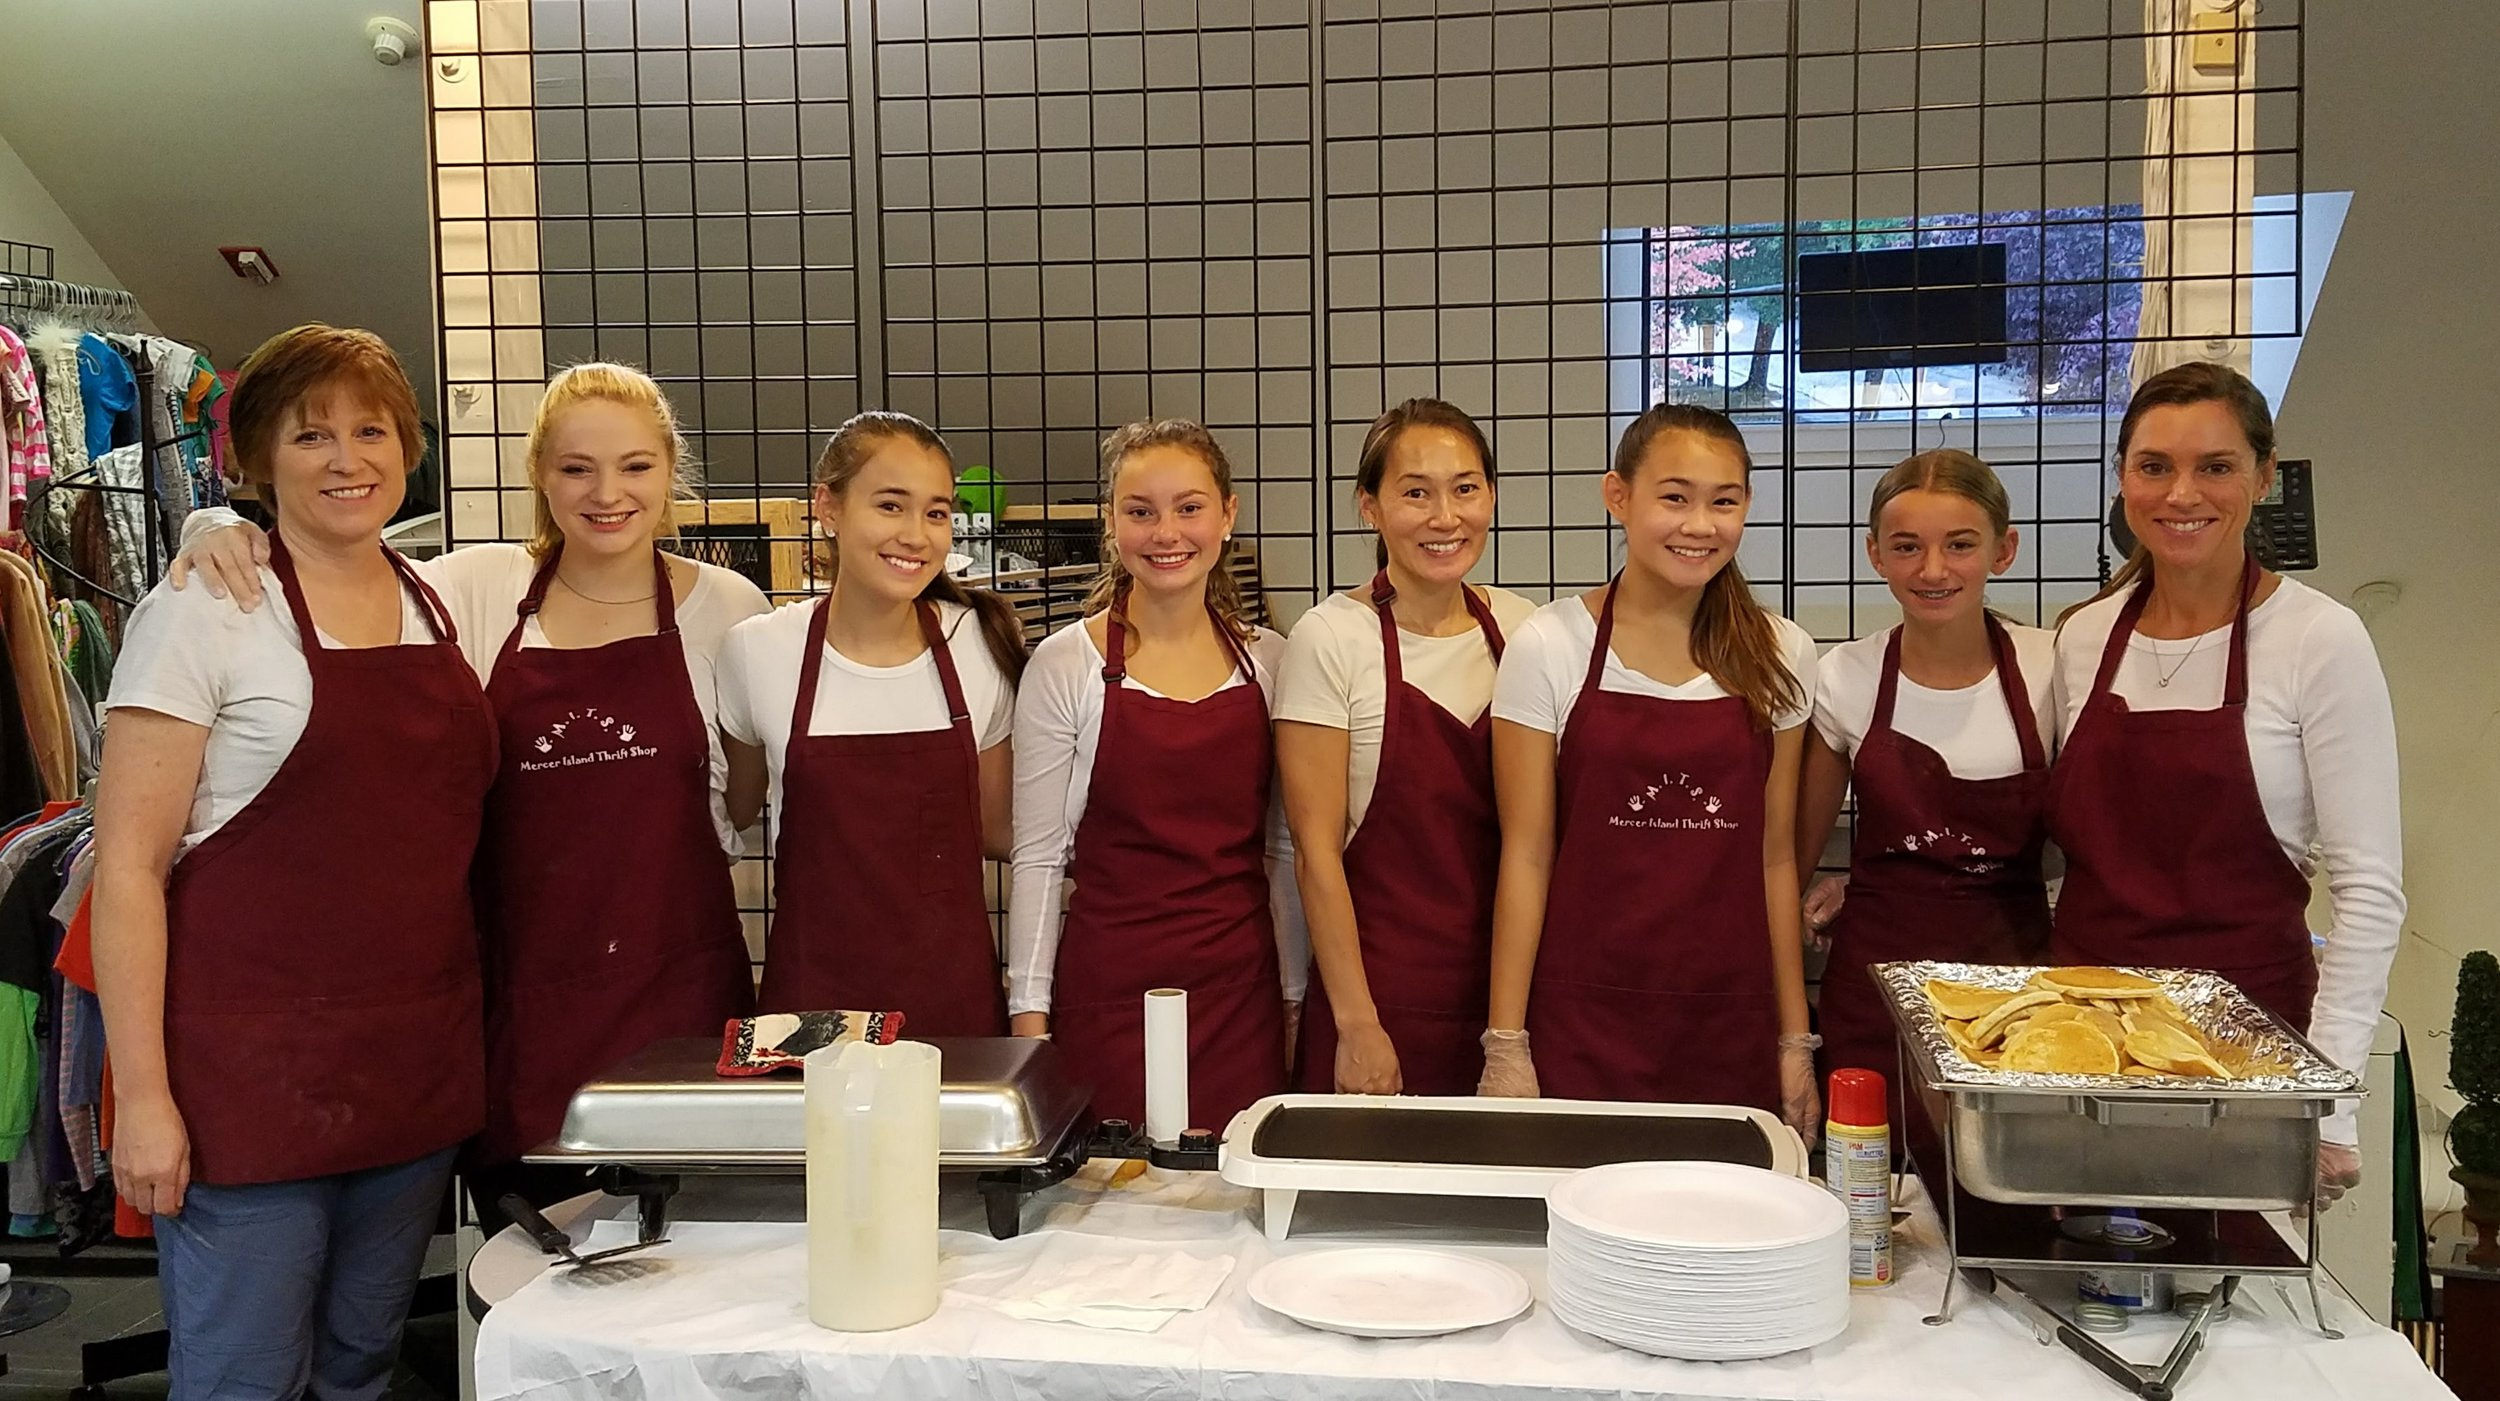 NCL Mom's and daughters serve Pancake Breakfast for MITS Volunteers